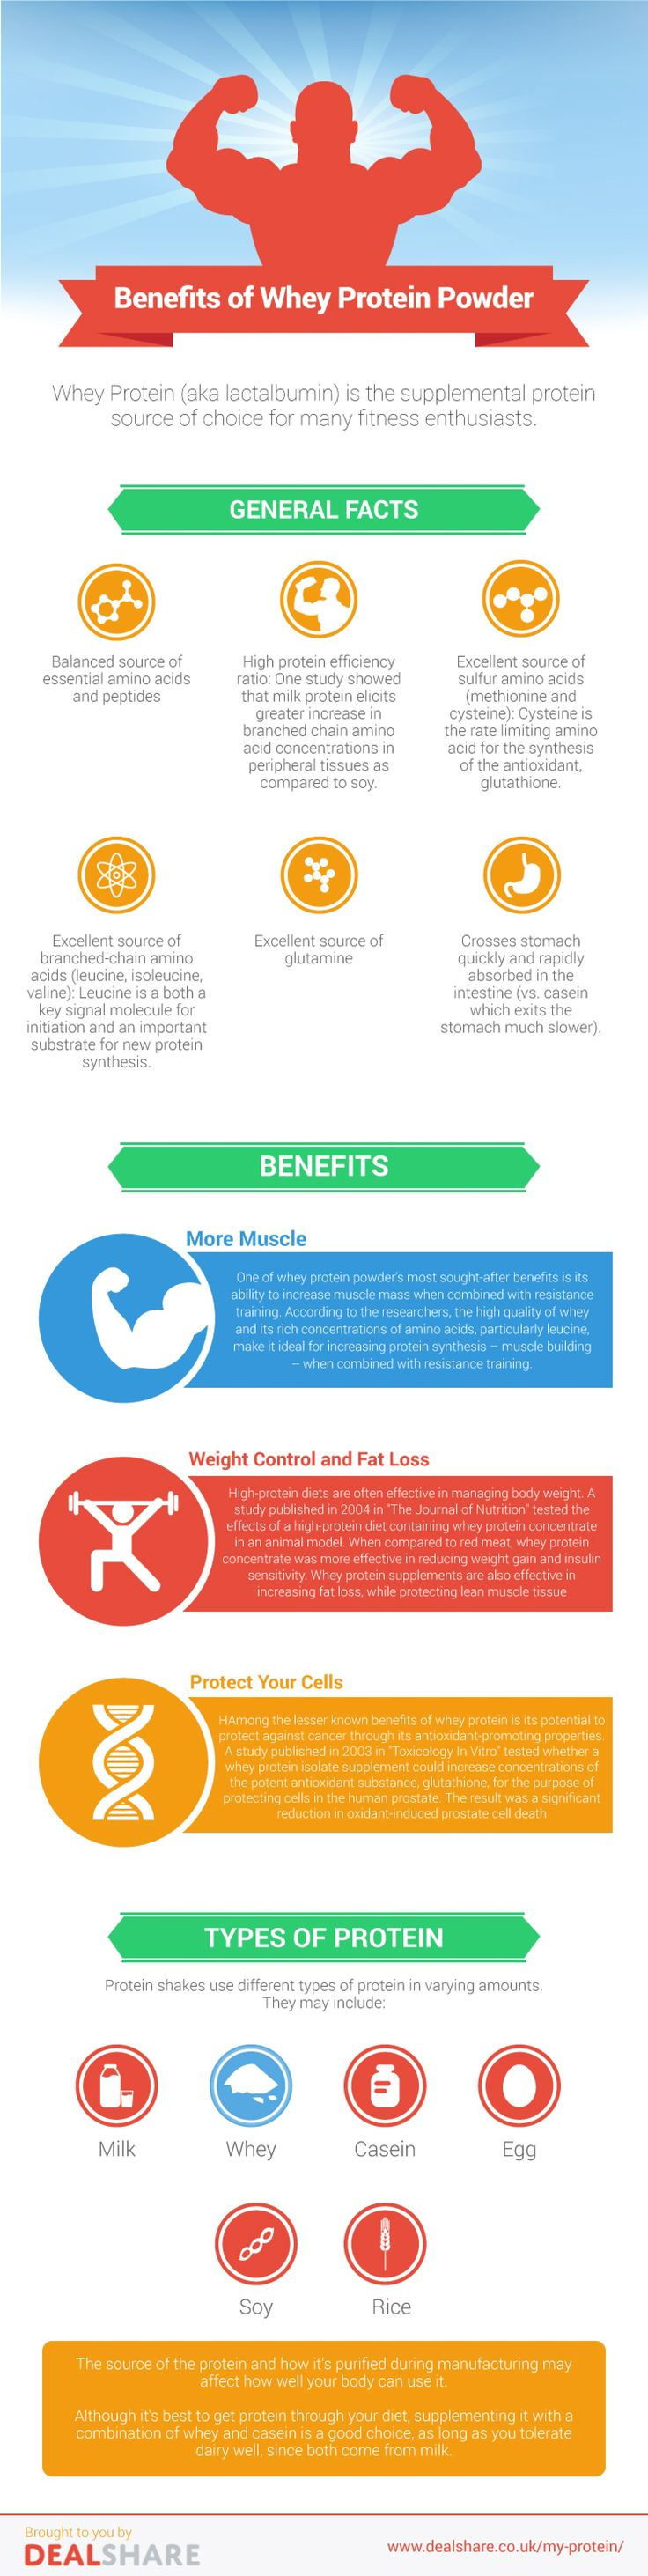 Benefits of Whey Protein Powder Infographic... https://topwheyproteinpowder.jimdo.com/